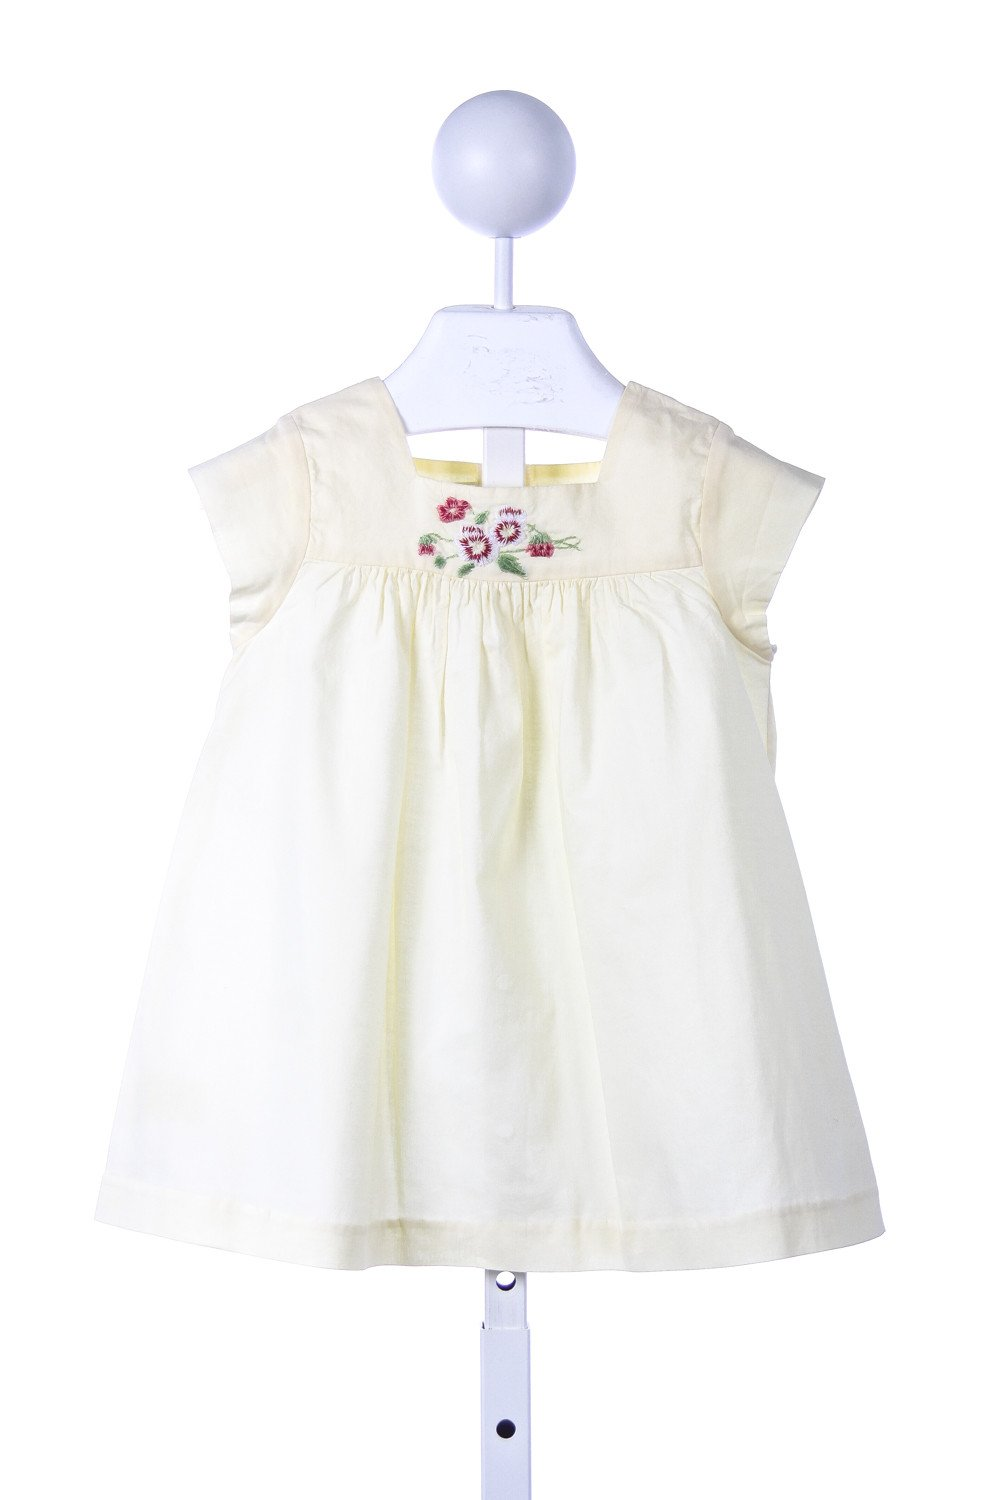 PIXIE LILY LIGHT YELLOW DRESS WITH EMBROIDERED PANSIES